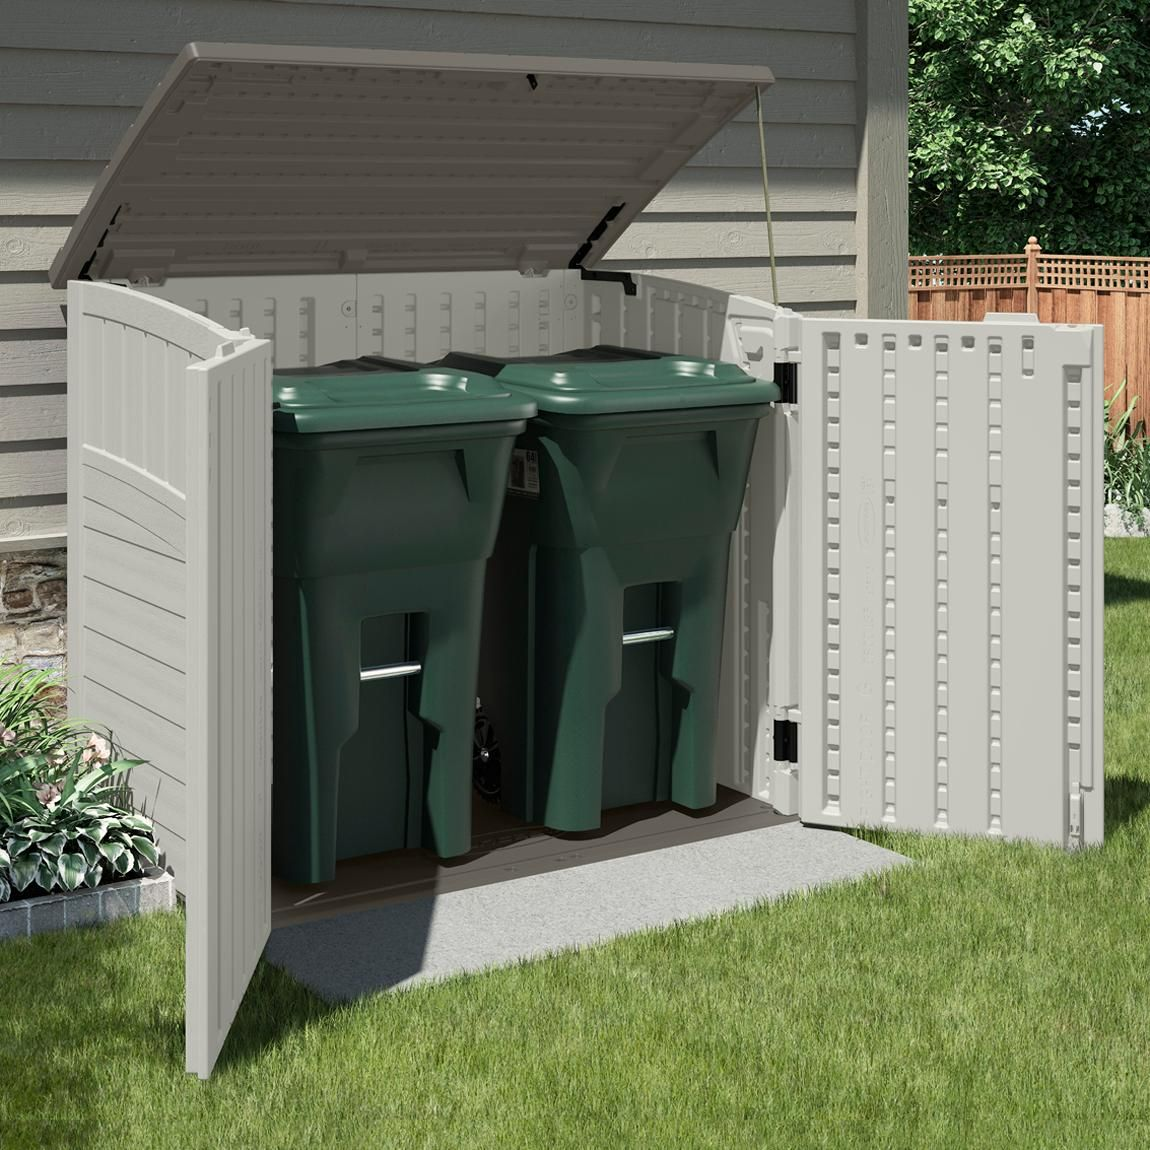 An Outdoor Storage Shed Is Ideal For Storing Garbage Cans, Lawn And Garden  Products.